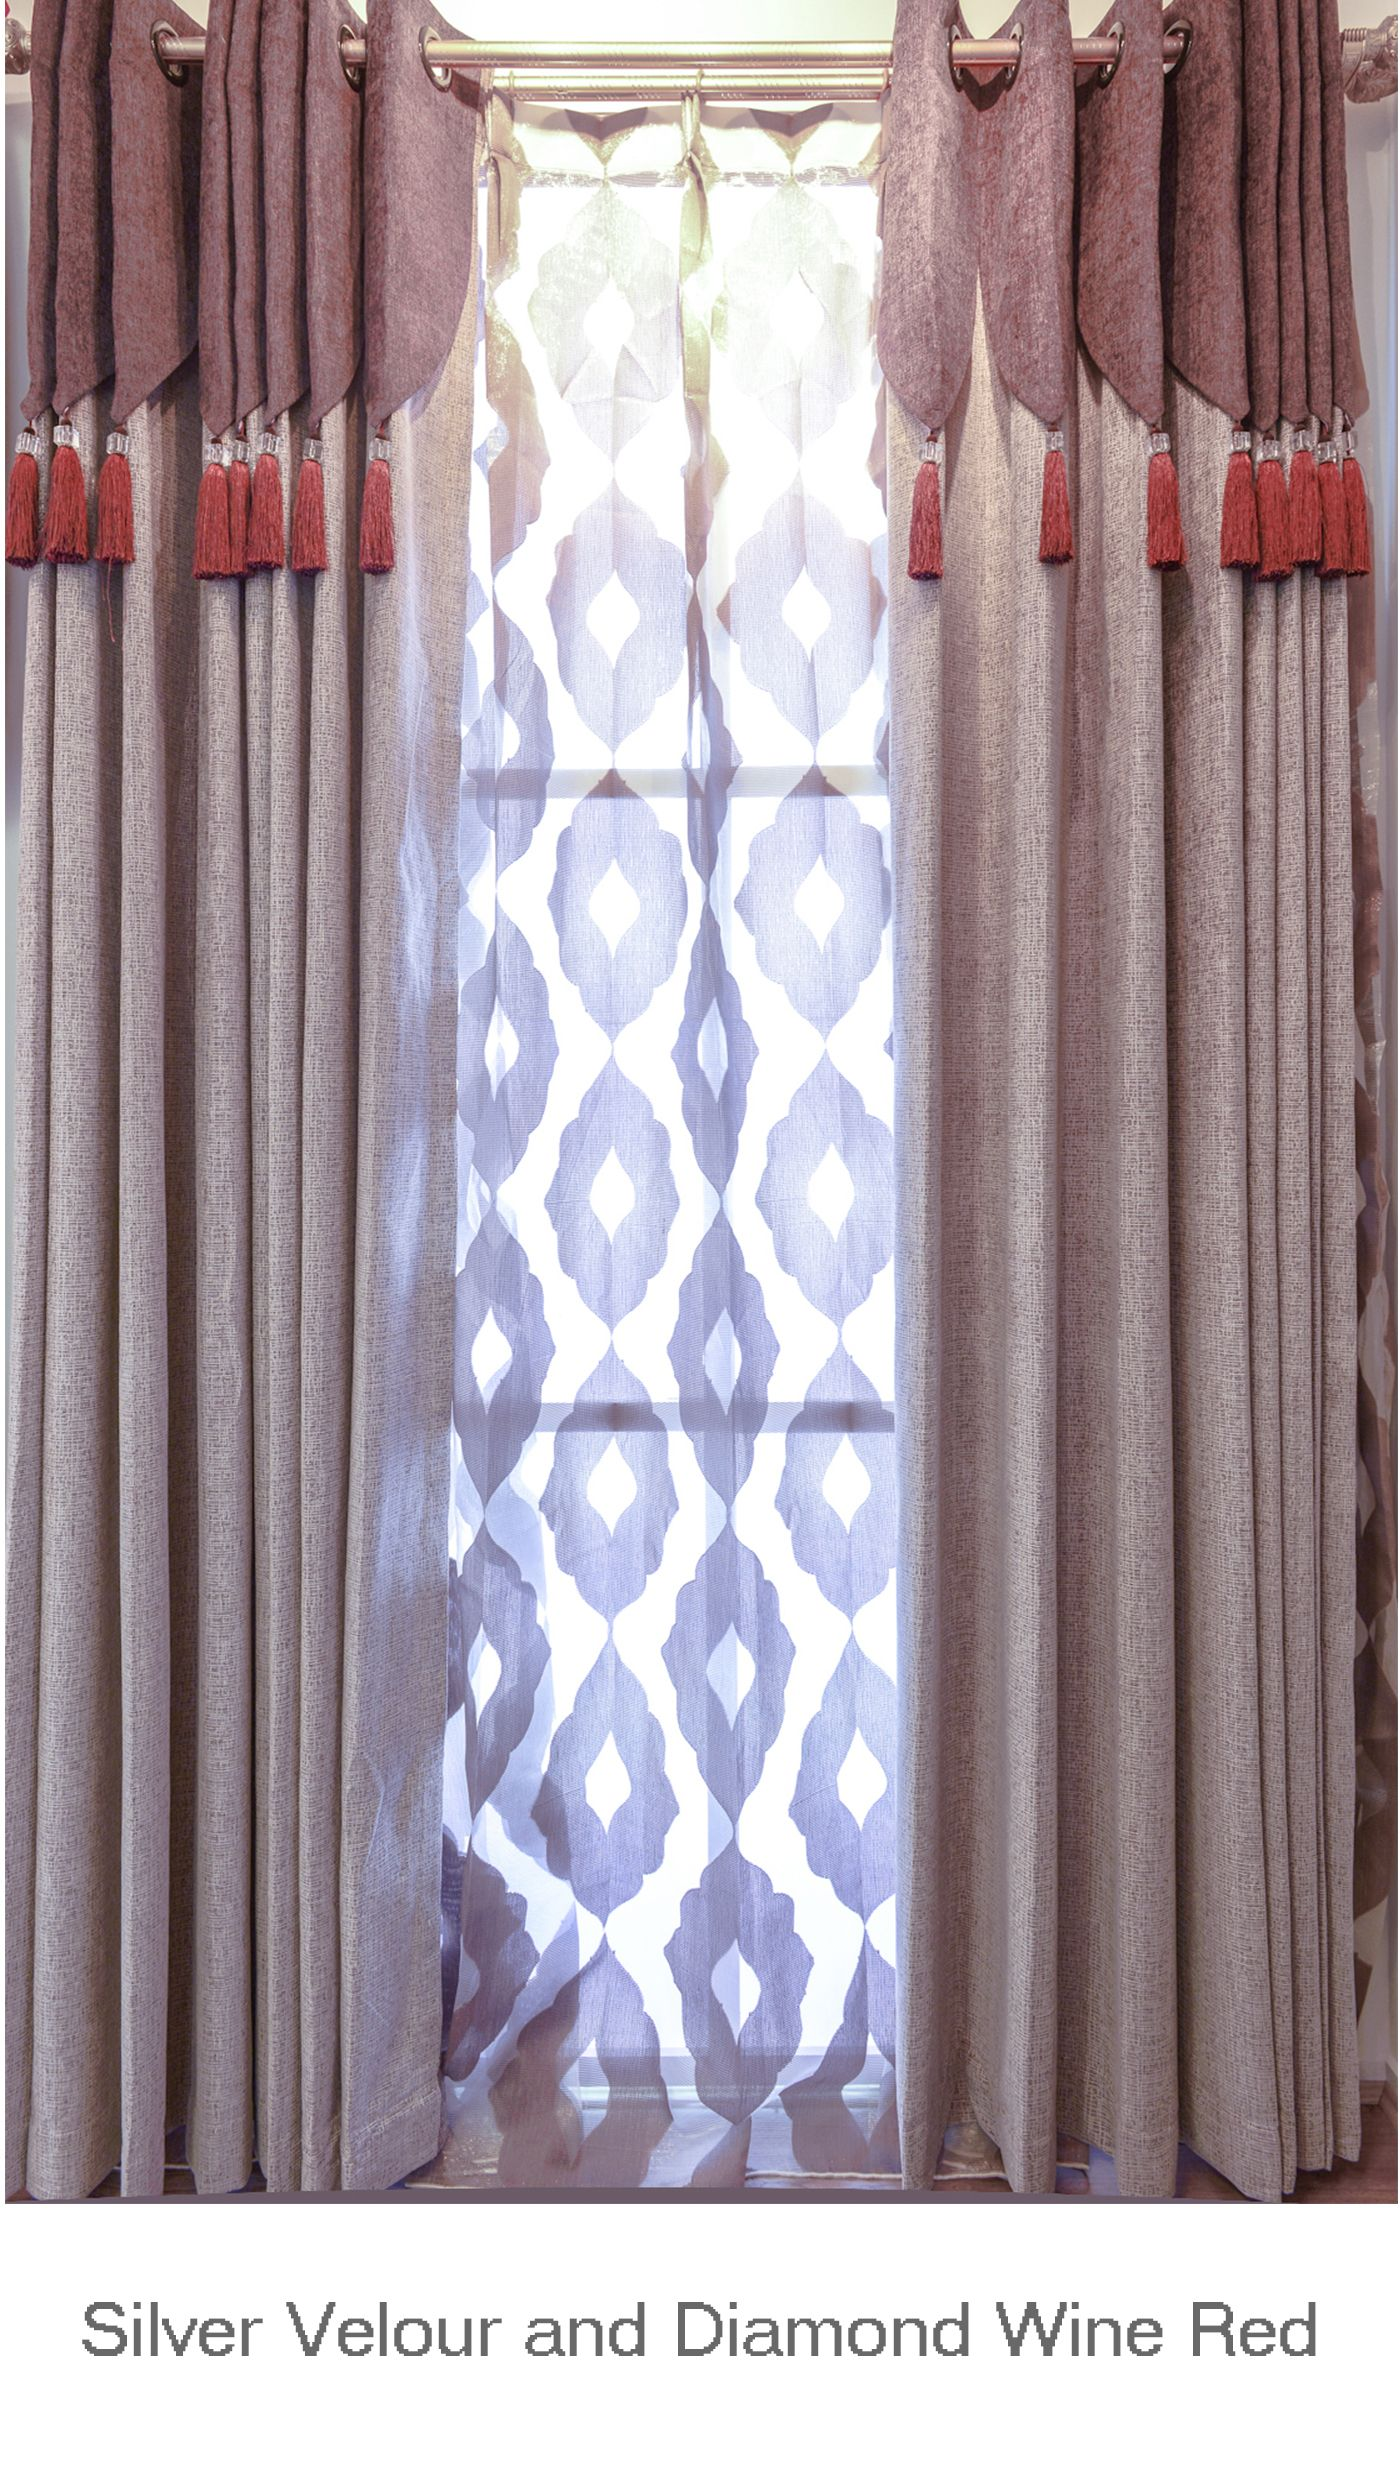 Luxurious Wine Red Diamond Sheers And Thick Velour Curtain Fabric